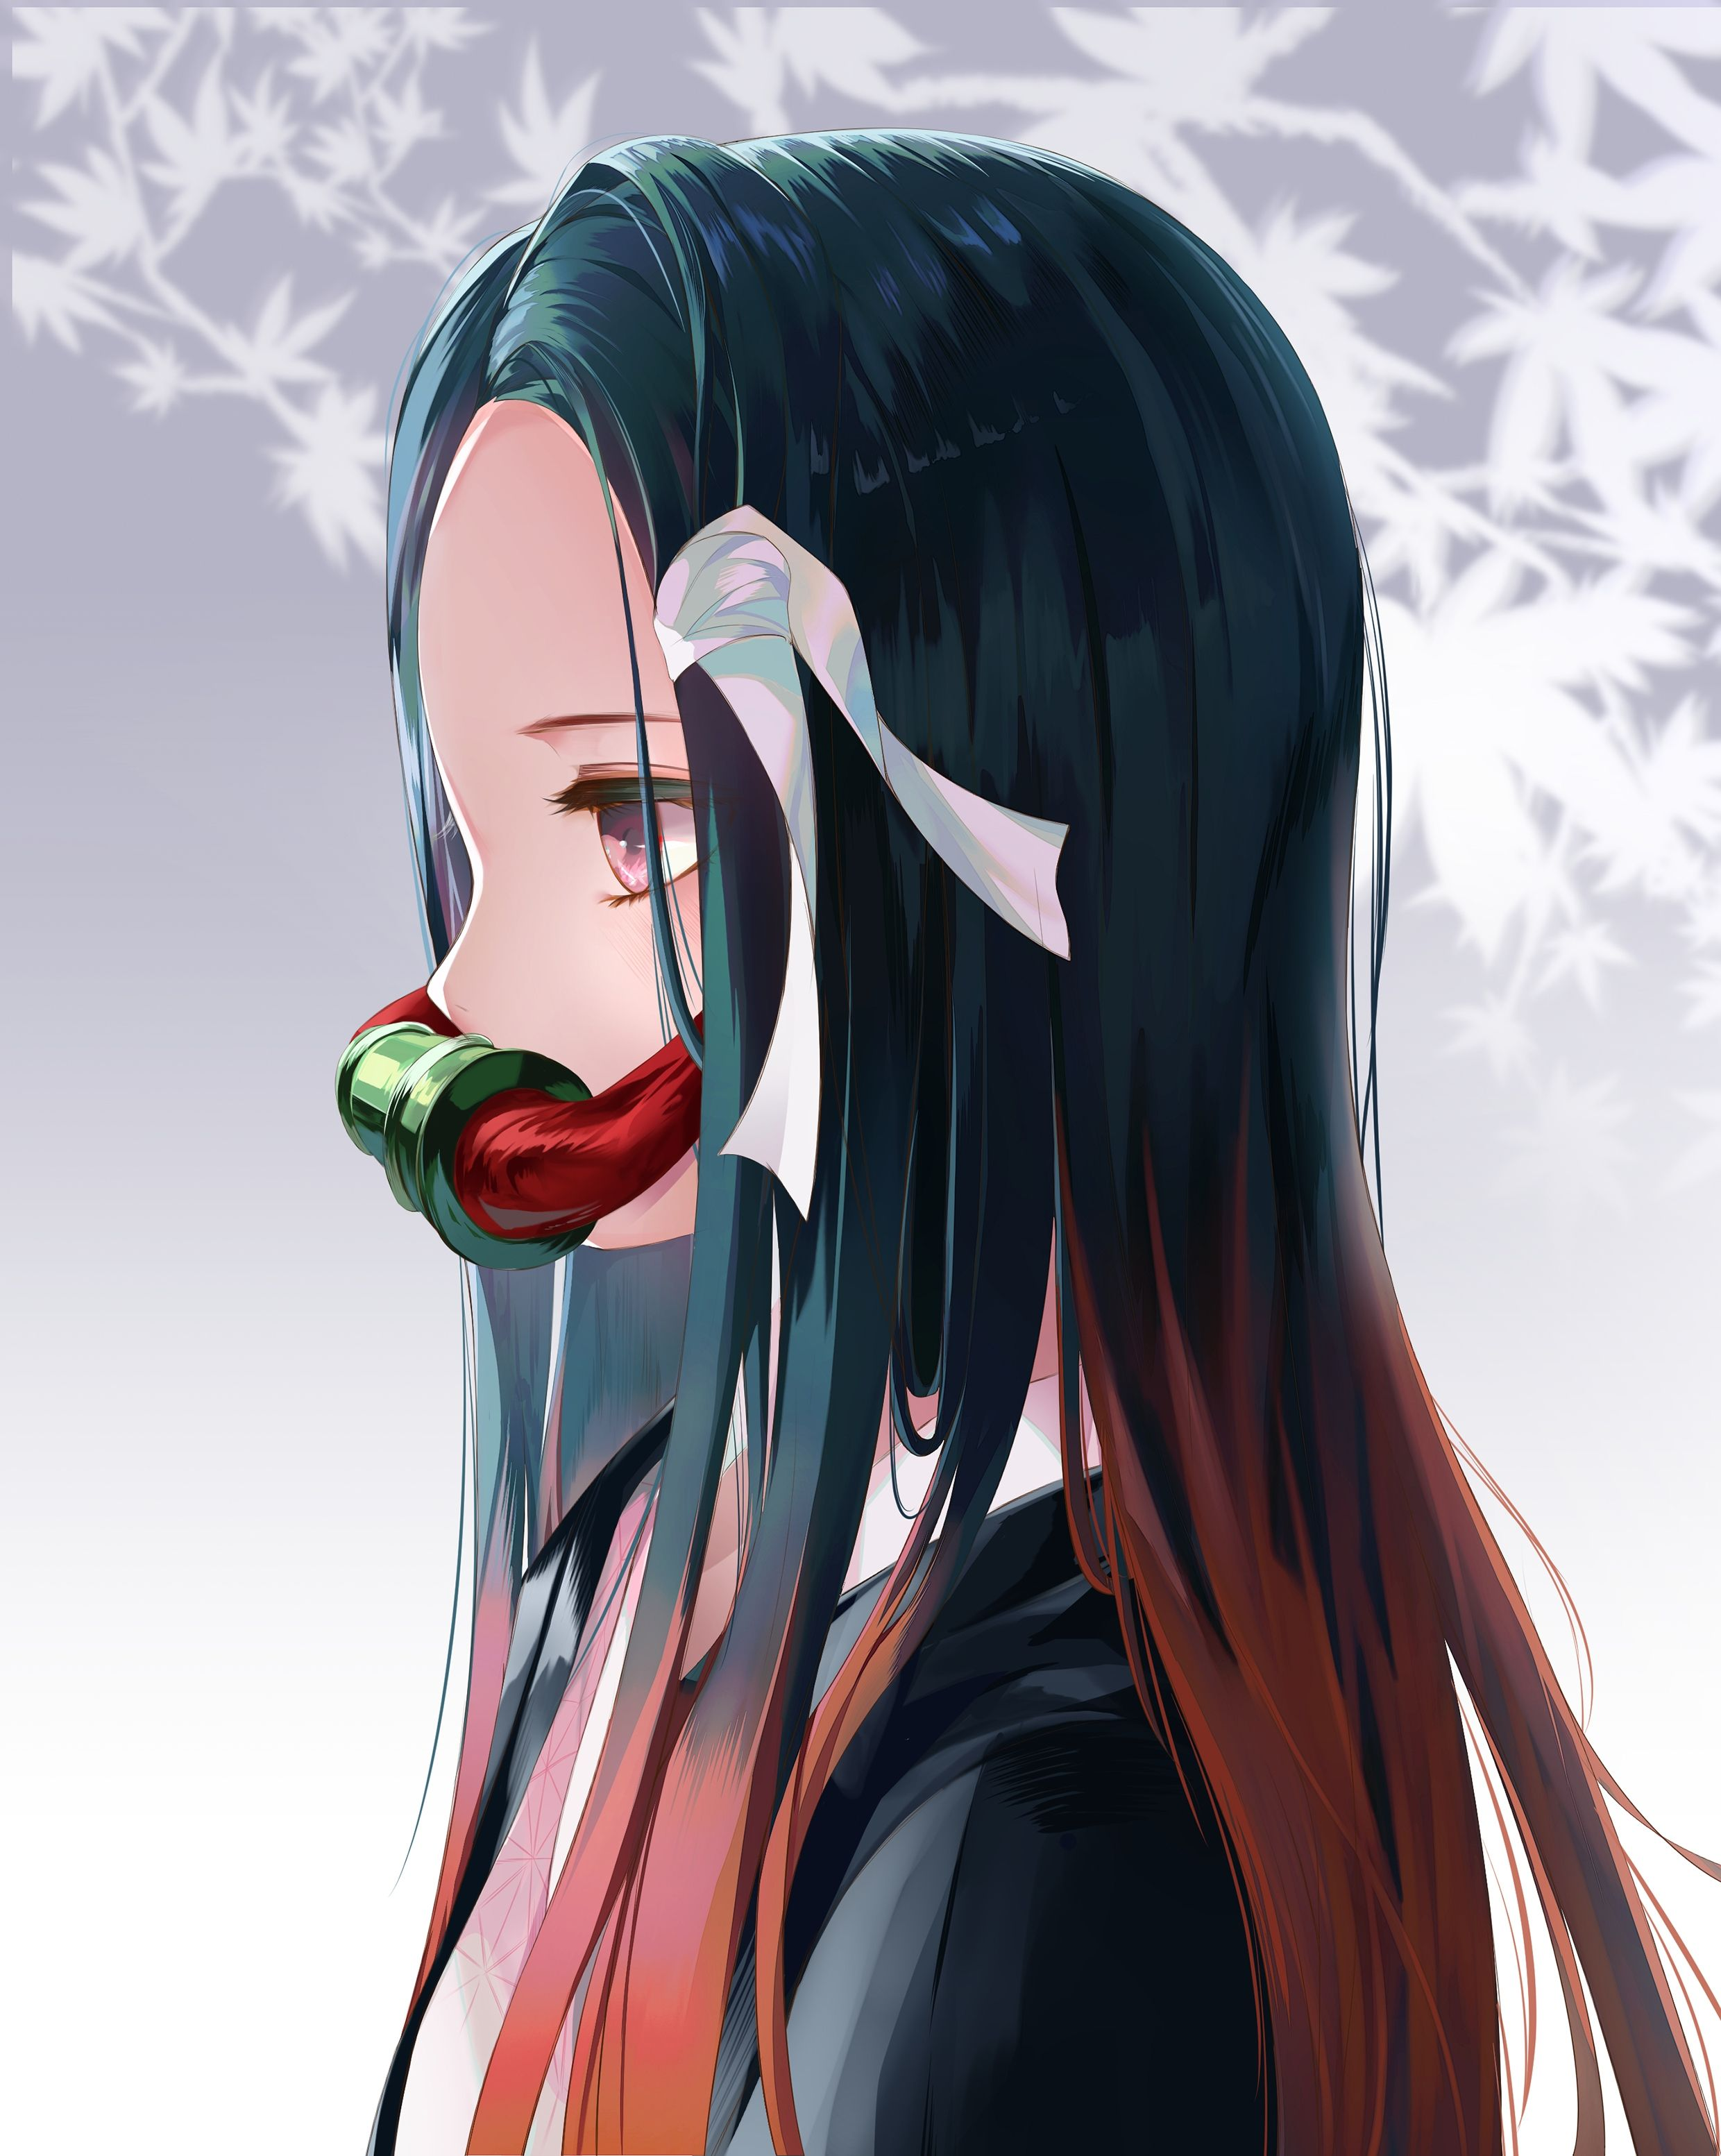 Download 2480x3107 Kamada Nezuko, Profile View, Kimetsu No